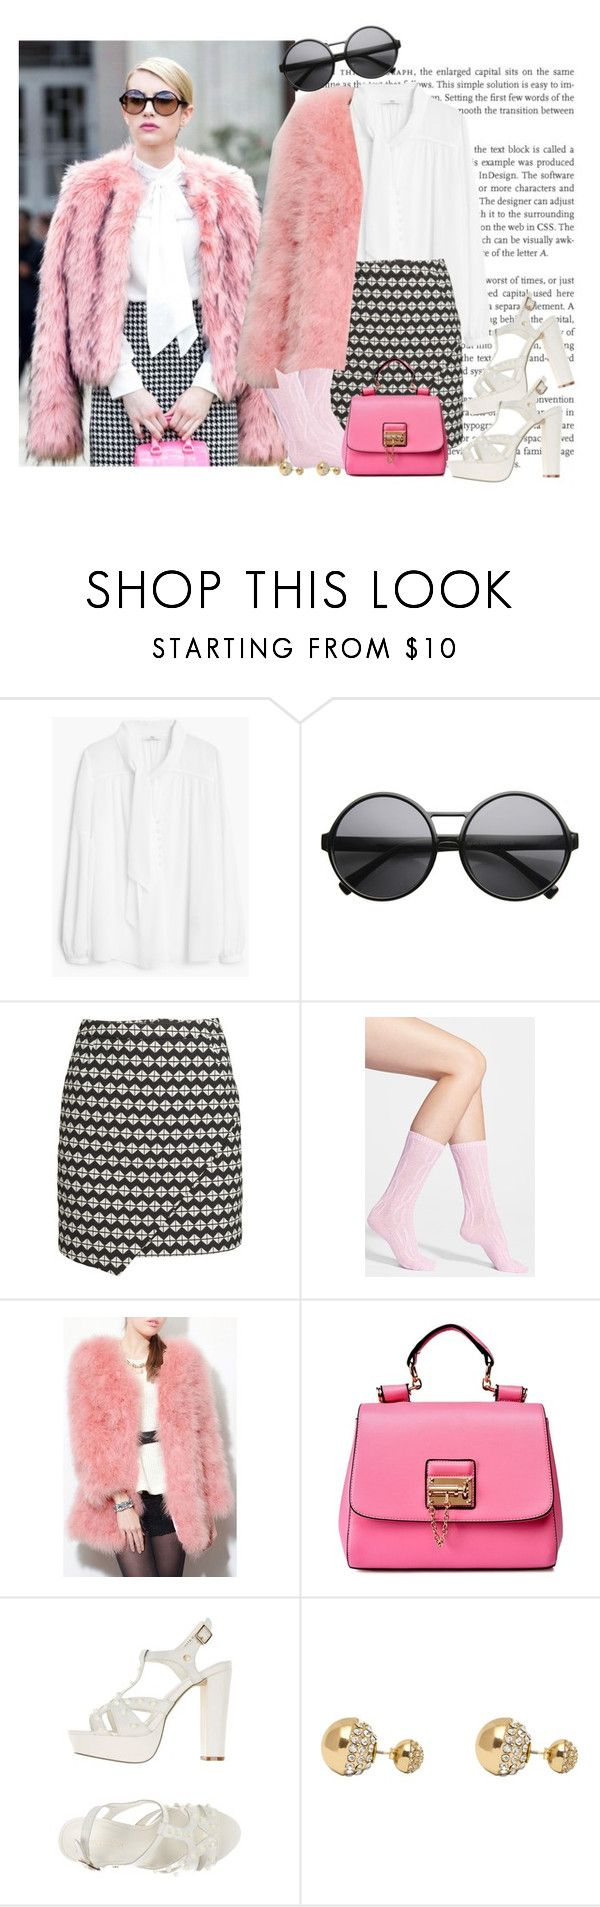 """Scream Queens: Chanel Oberlin"" by fashionbrownies ❤ liked on Polyvore featuring MANGO, H&M, Nordstrom, Silvian Heach, Adele Marie and halloweencostume"